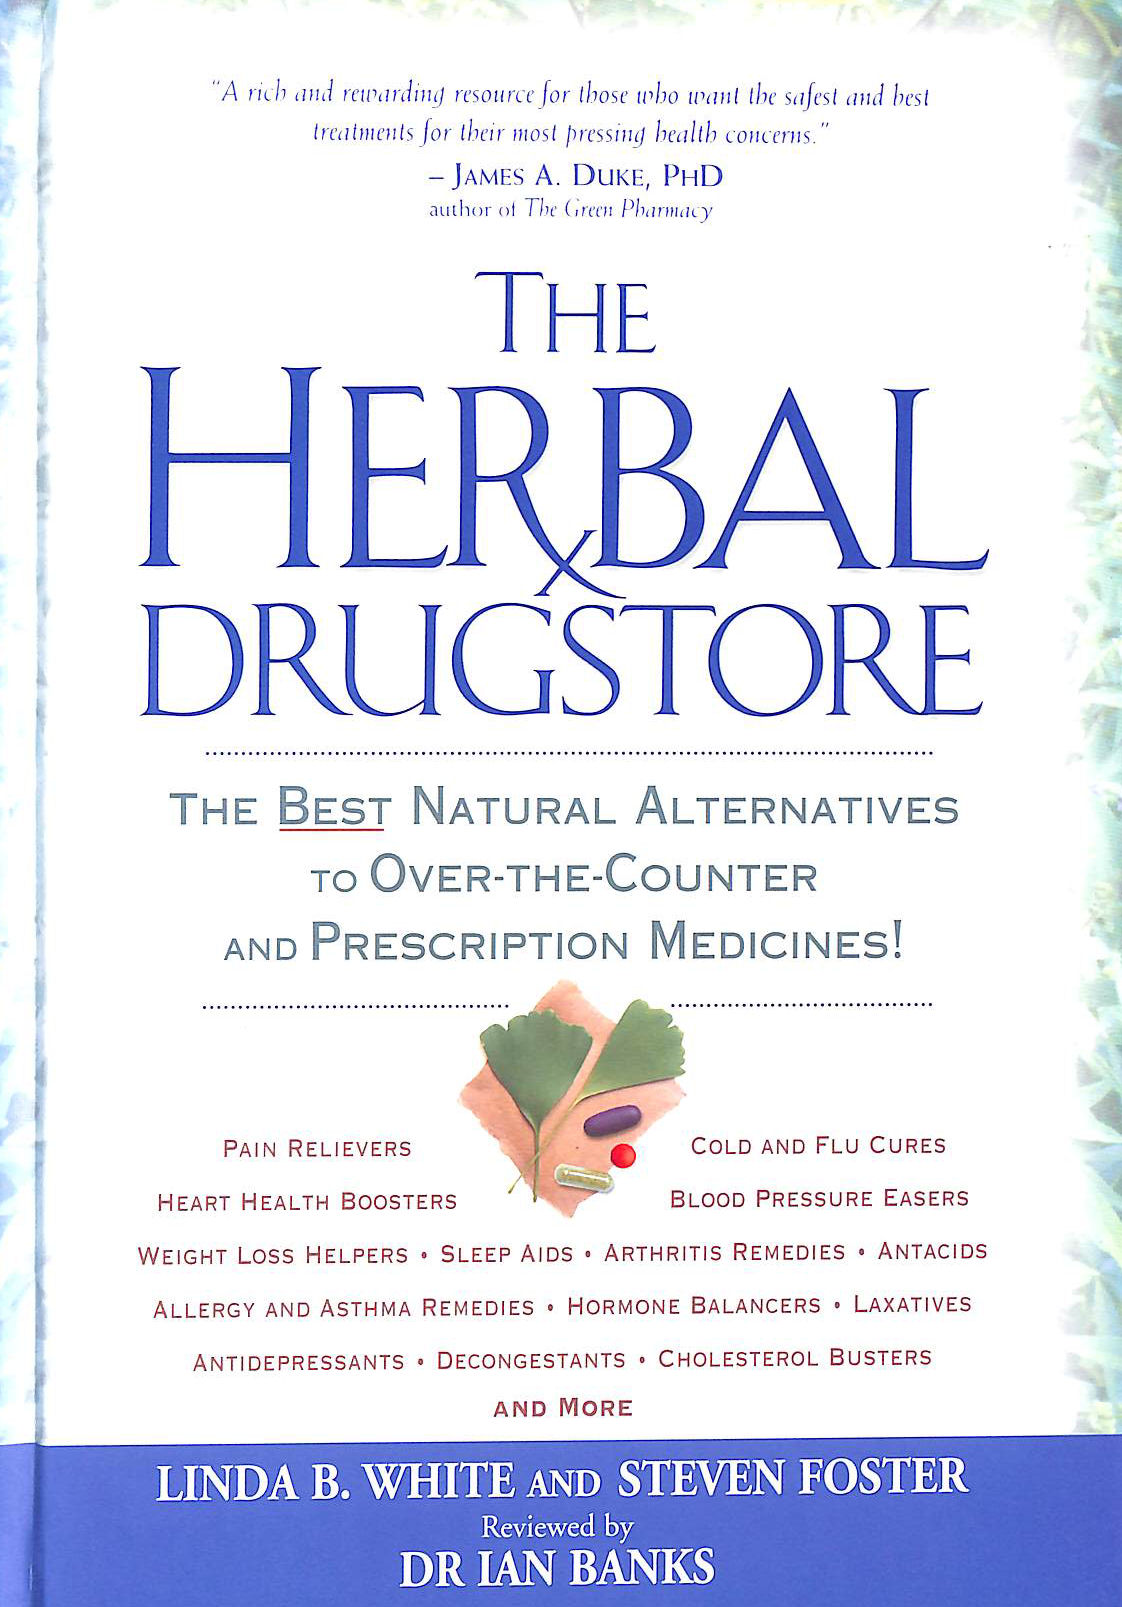 Image for The Herbal Drugstore. The Best Natural Alternatives to Over-The-Counter And Prescription Medicines.